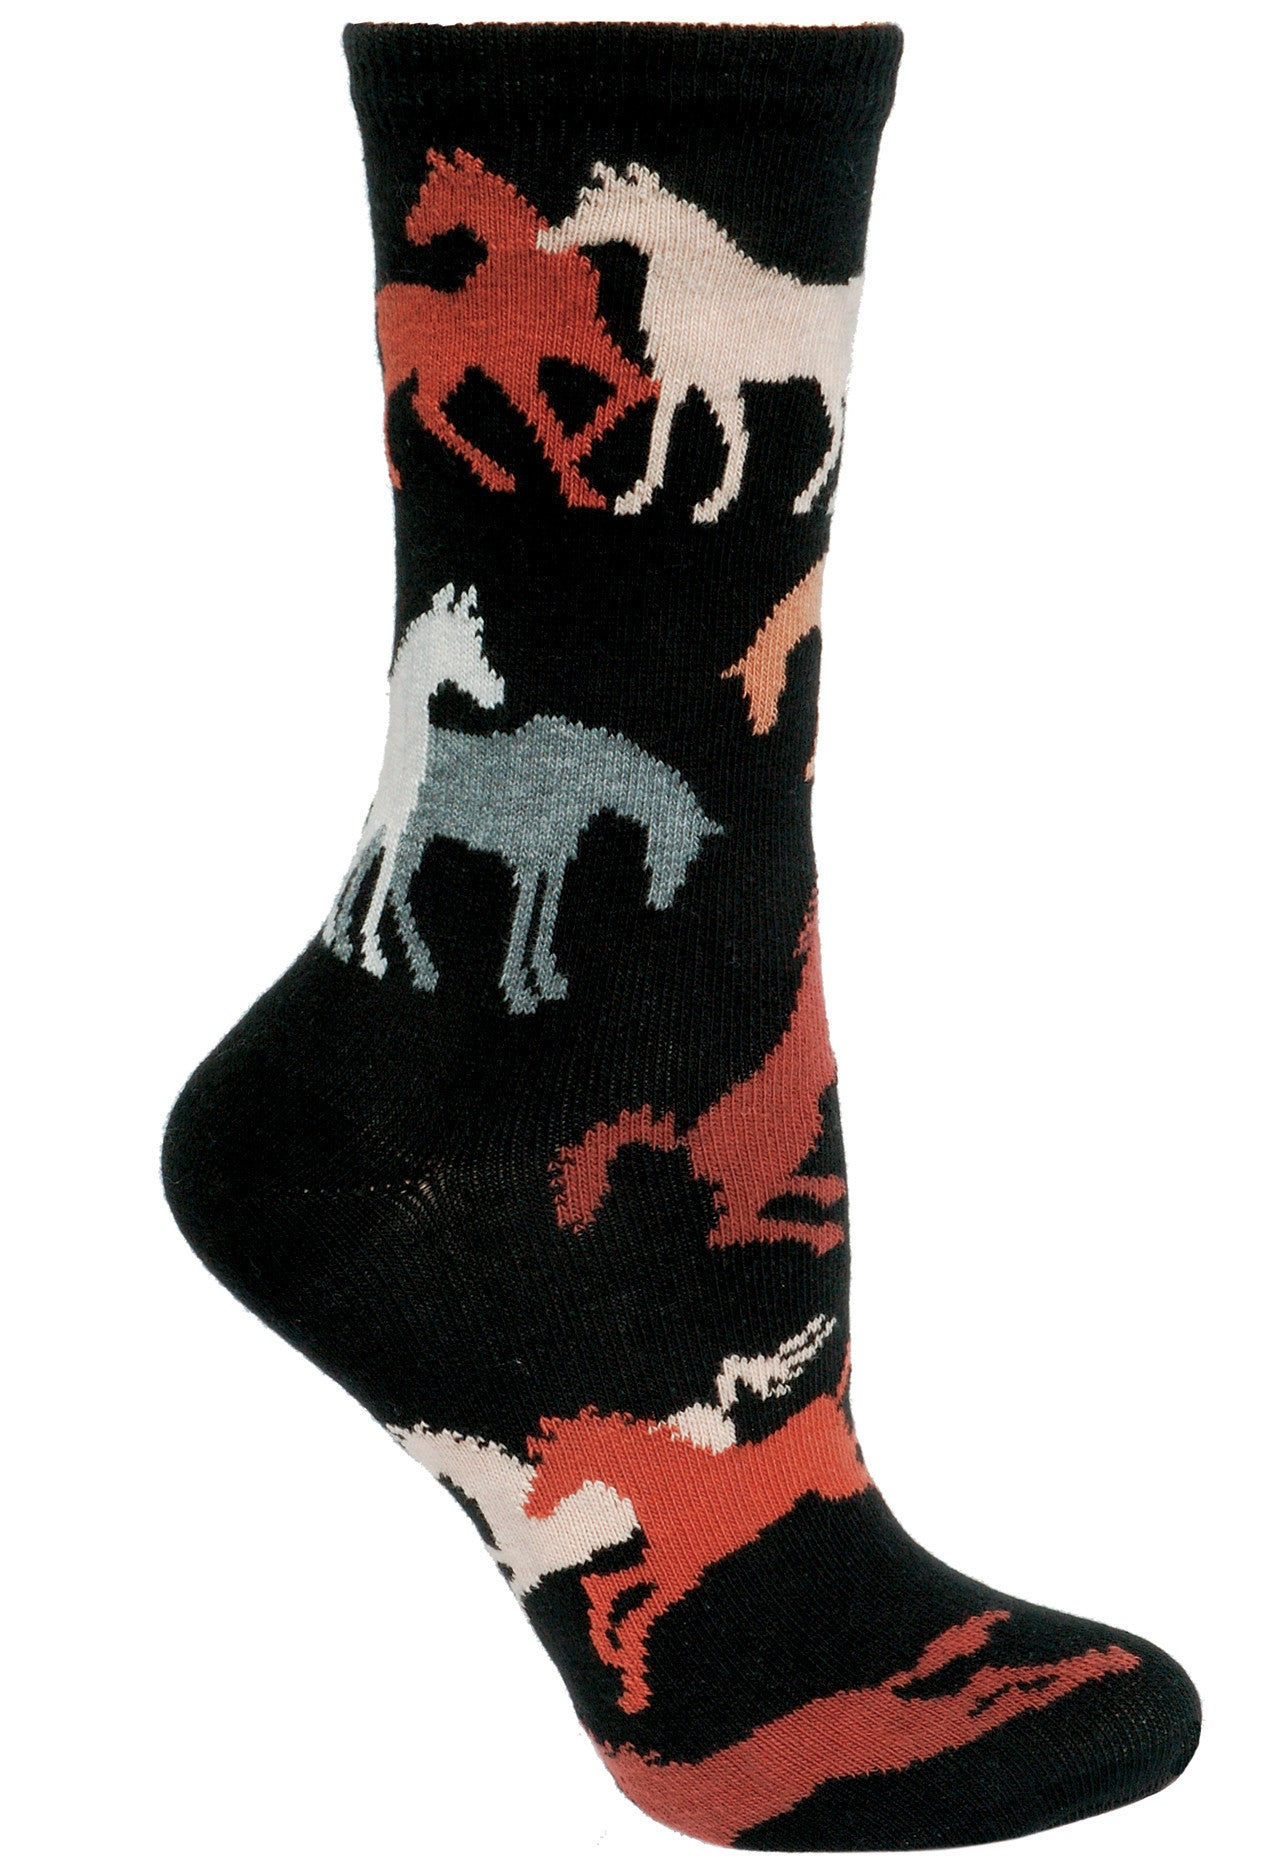 Horses Crew Socks on Black